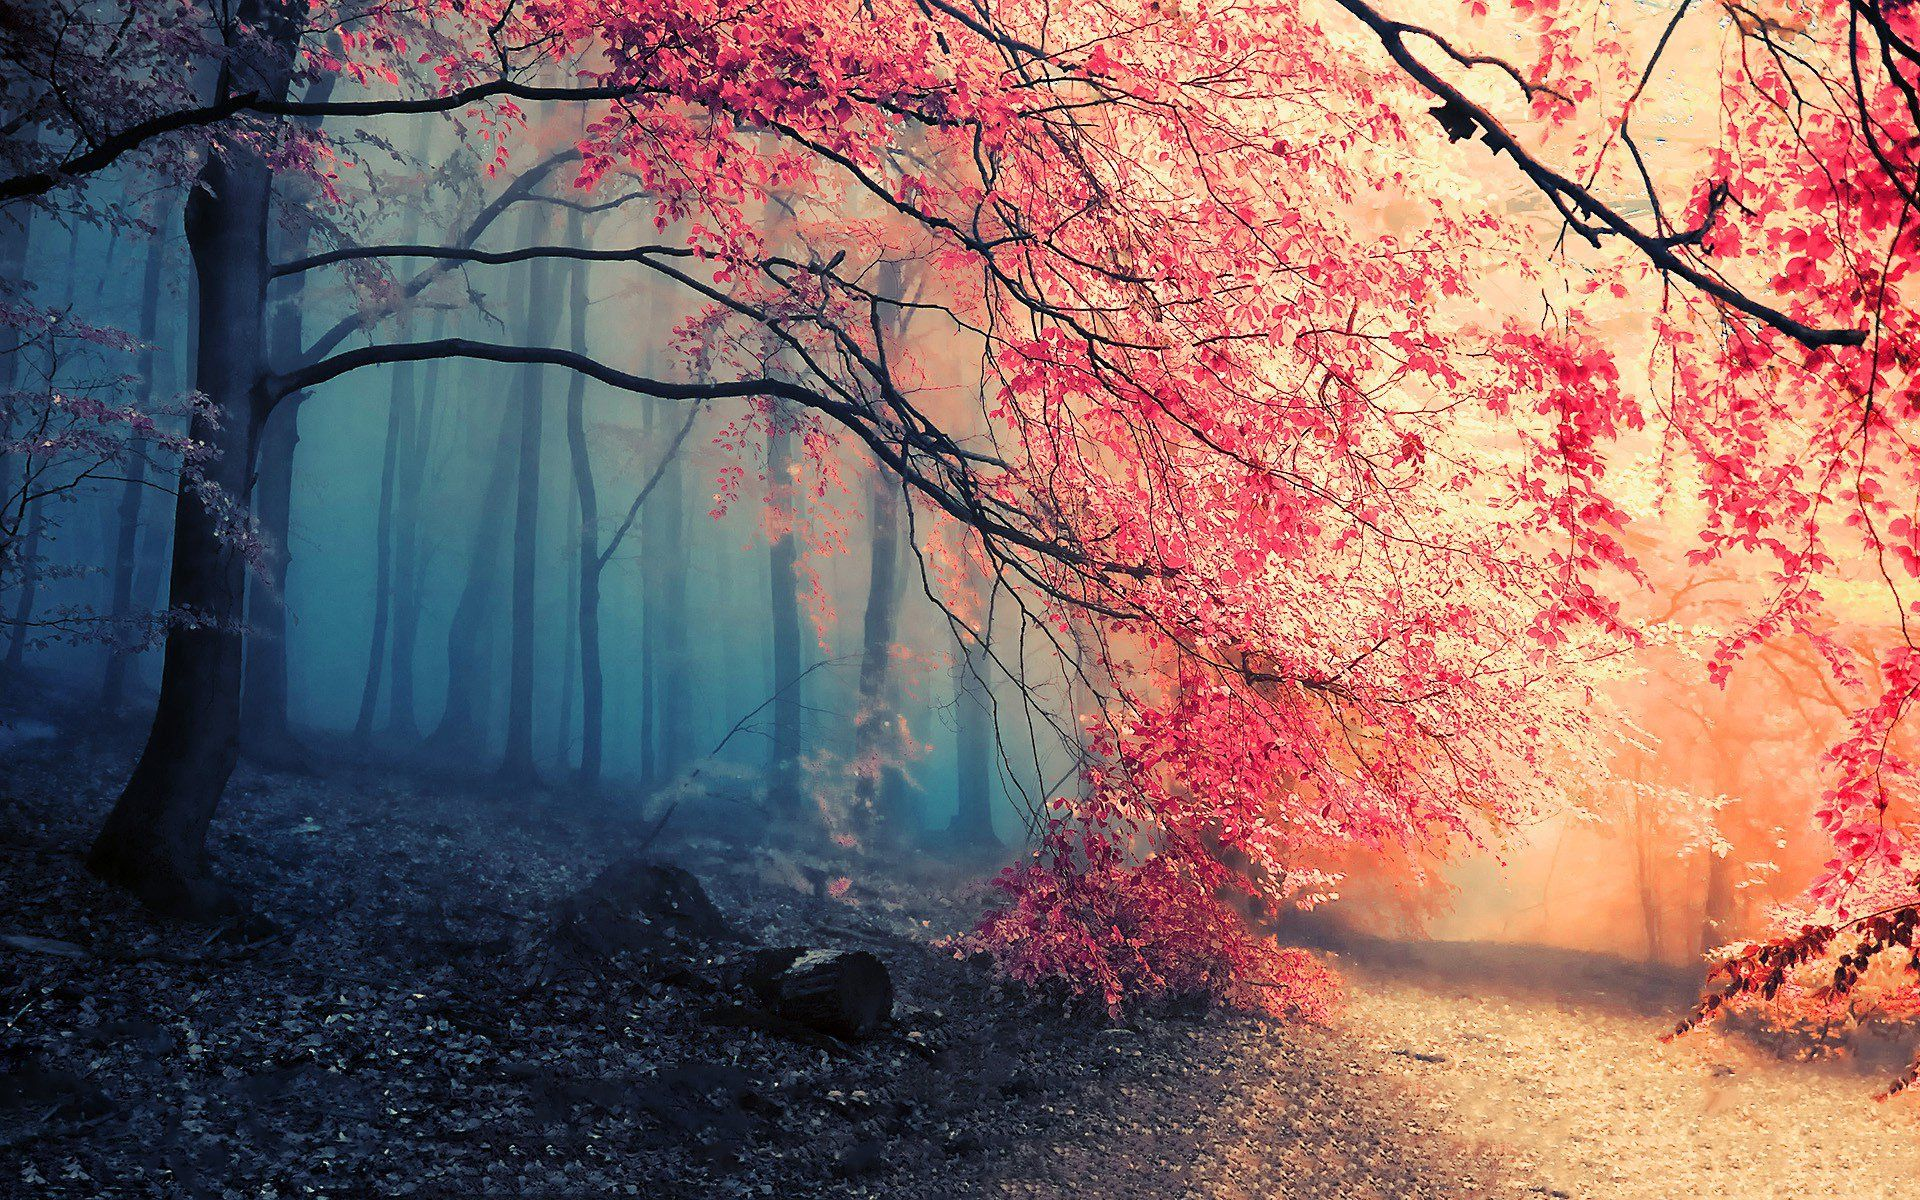 HD Wallpapers - Top Free HD Backgrounds